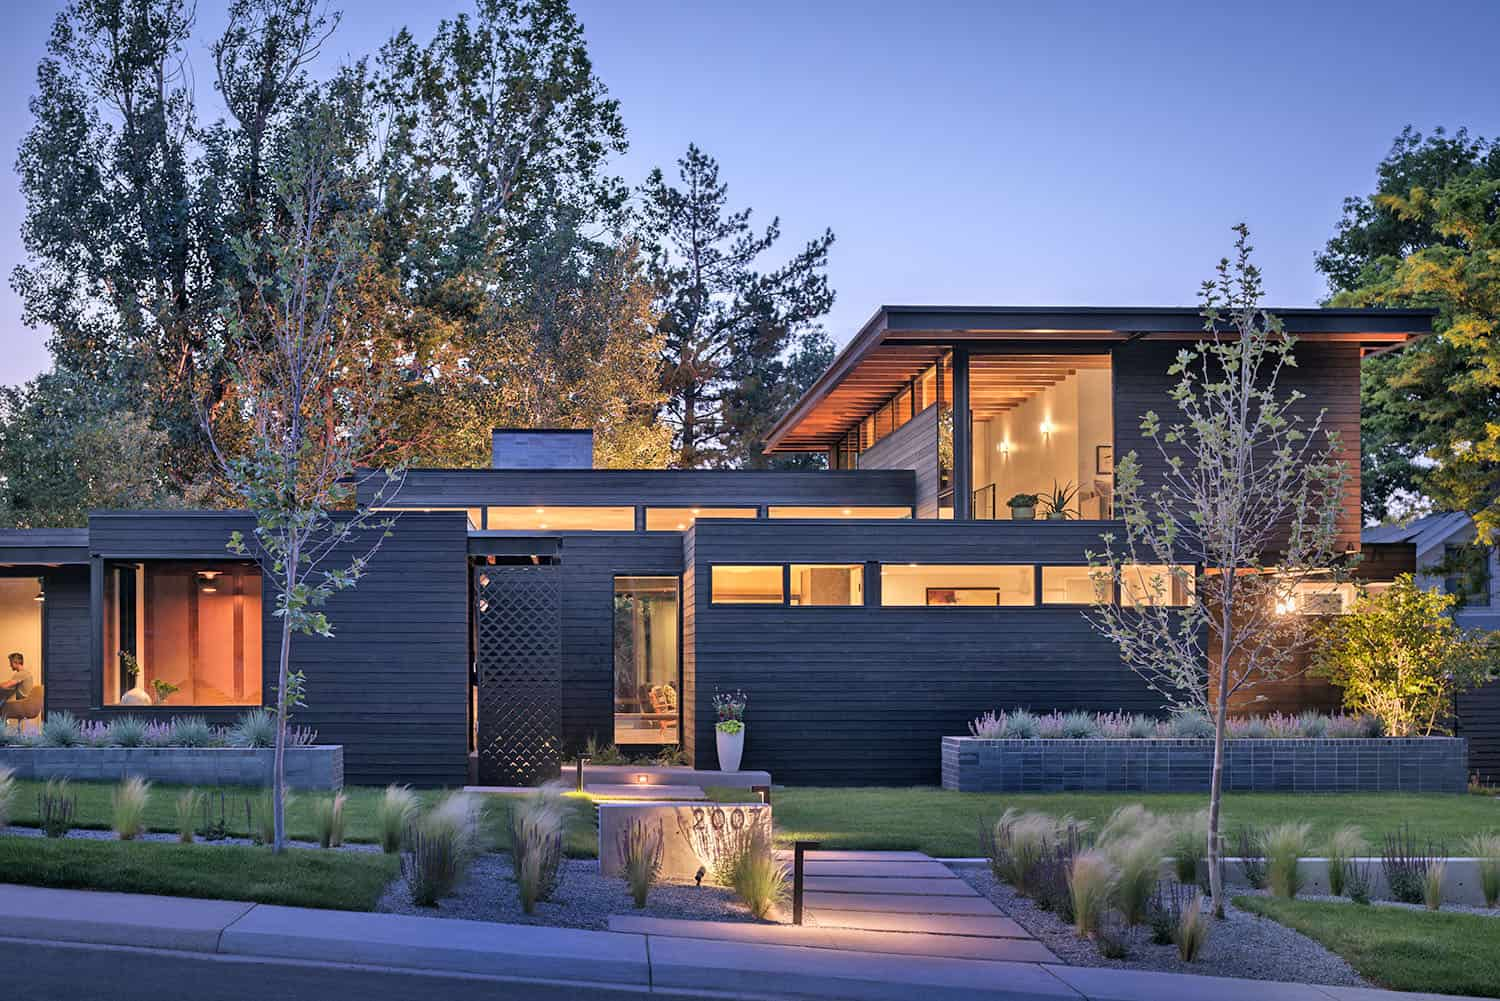 Inviting garden house embraces indoor-outdoor living in Colorado